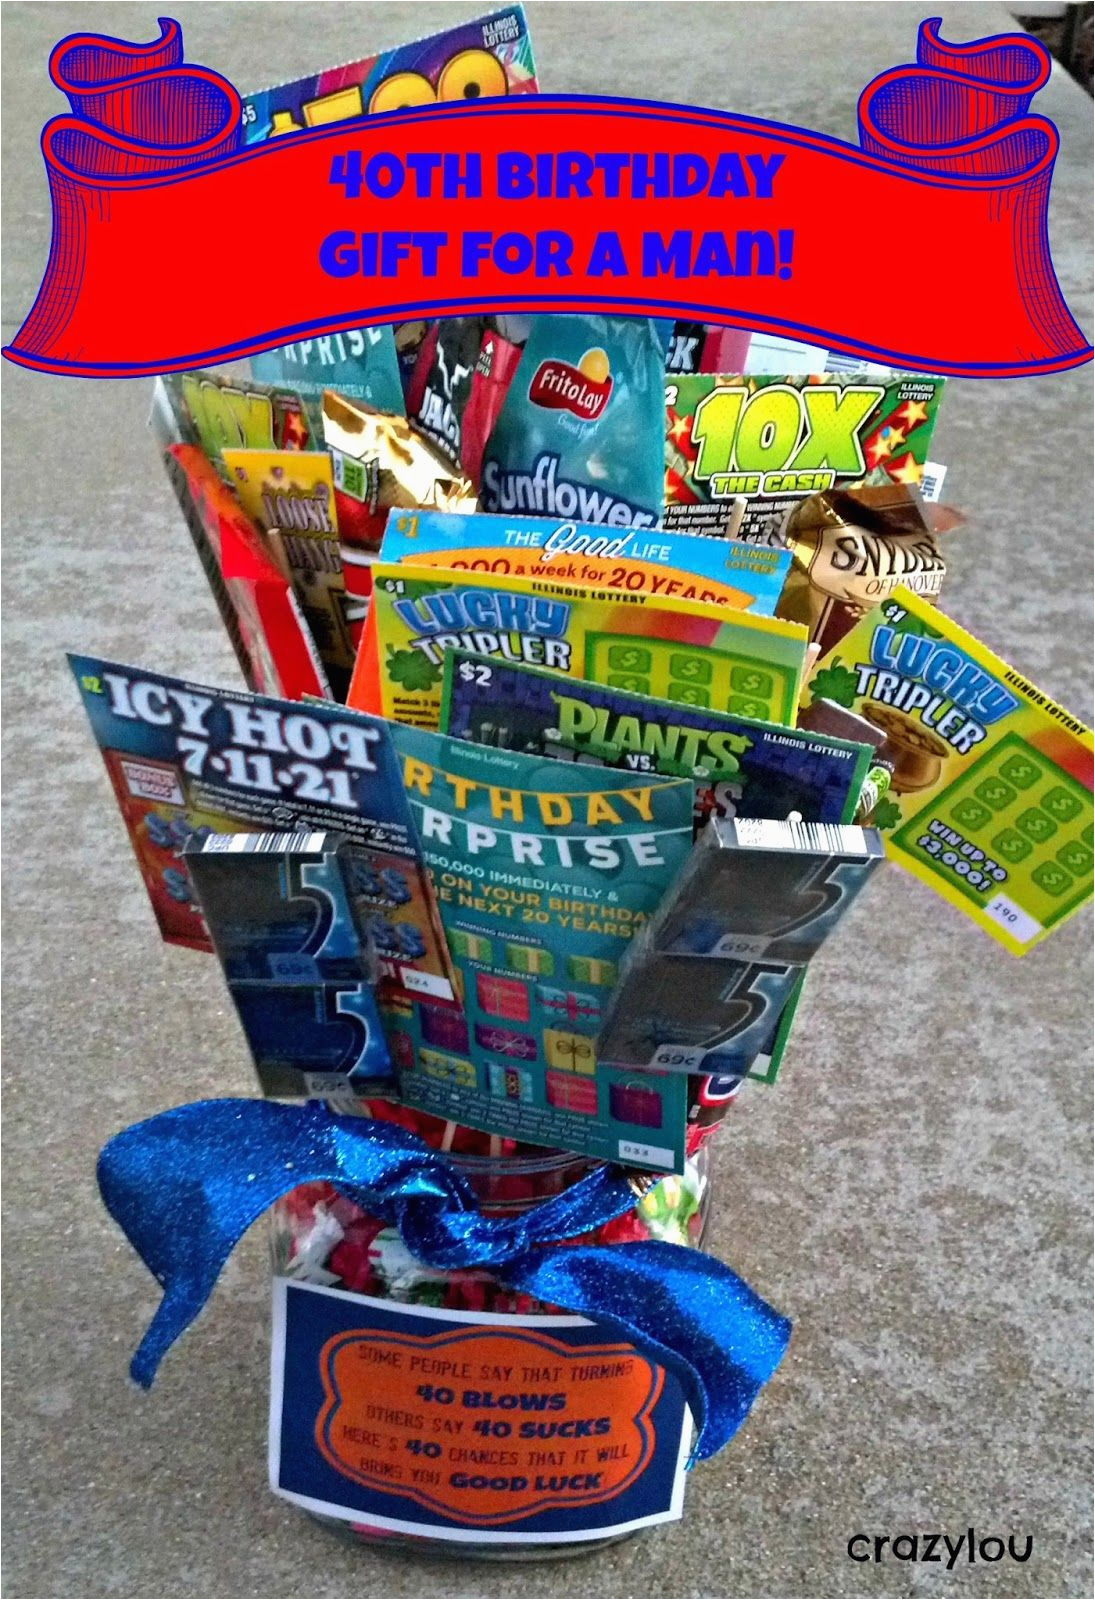 Birthday Party Decorations For Men Ideas Google Search Bday Jpg 1095x1600